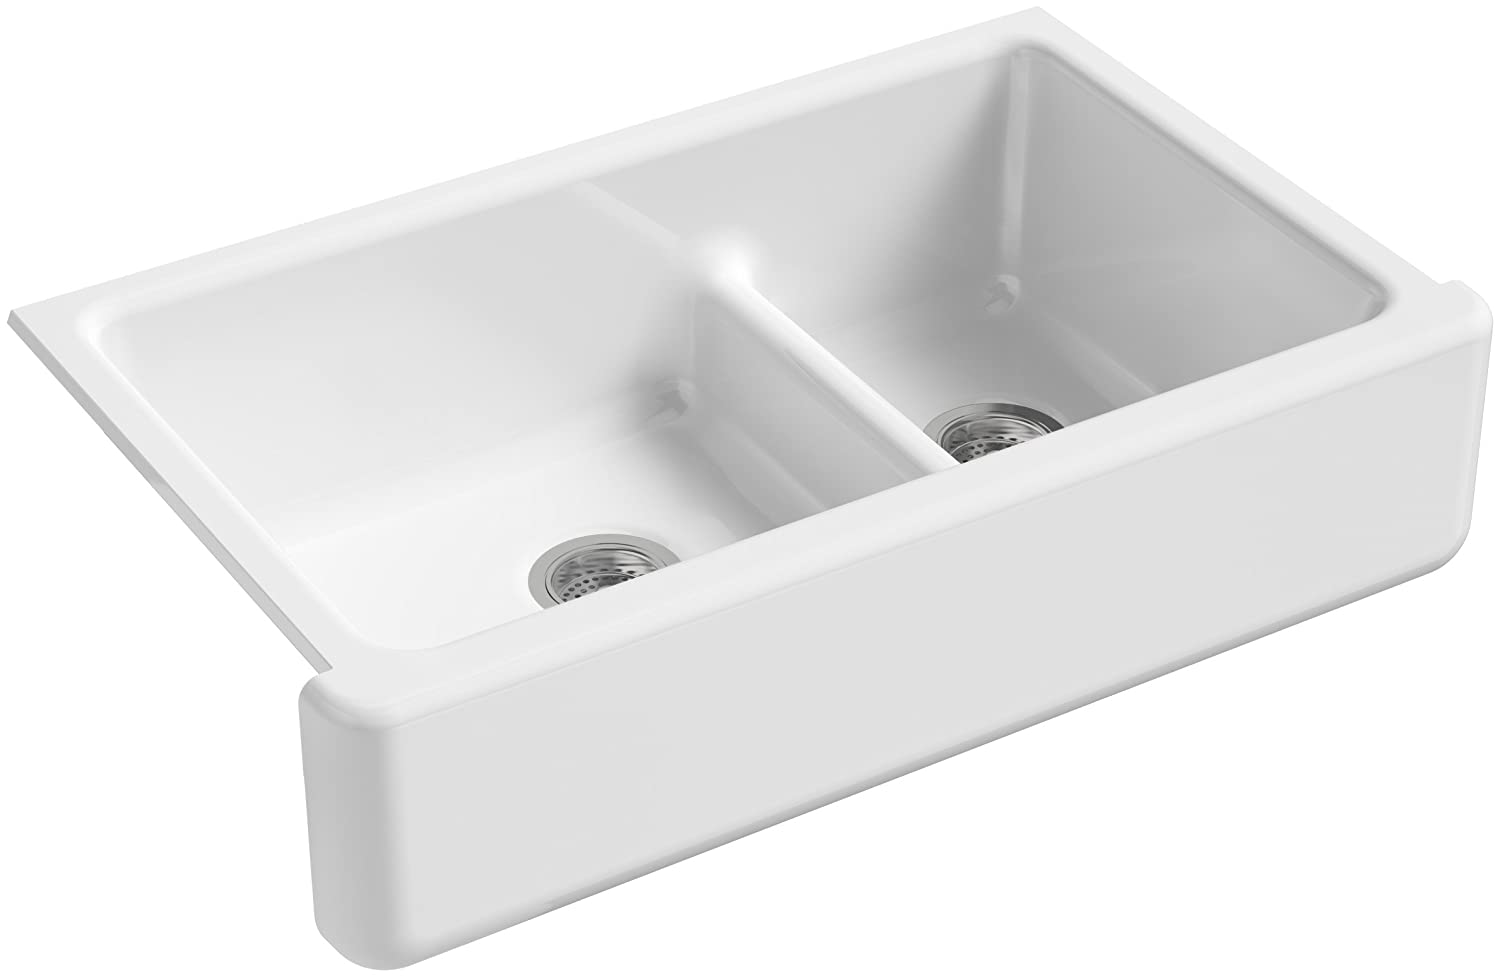 Apron Sink 36 : ... Apron-Front Double-Bowl Kitchen Sink with Tall Apron, 35-1/2-Inch X 21